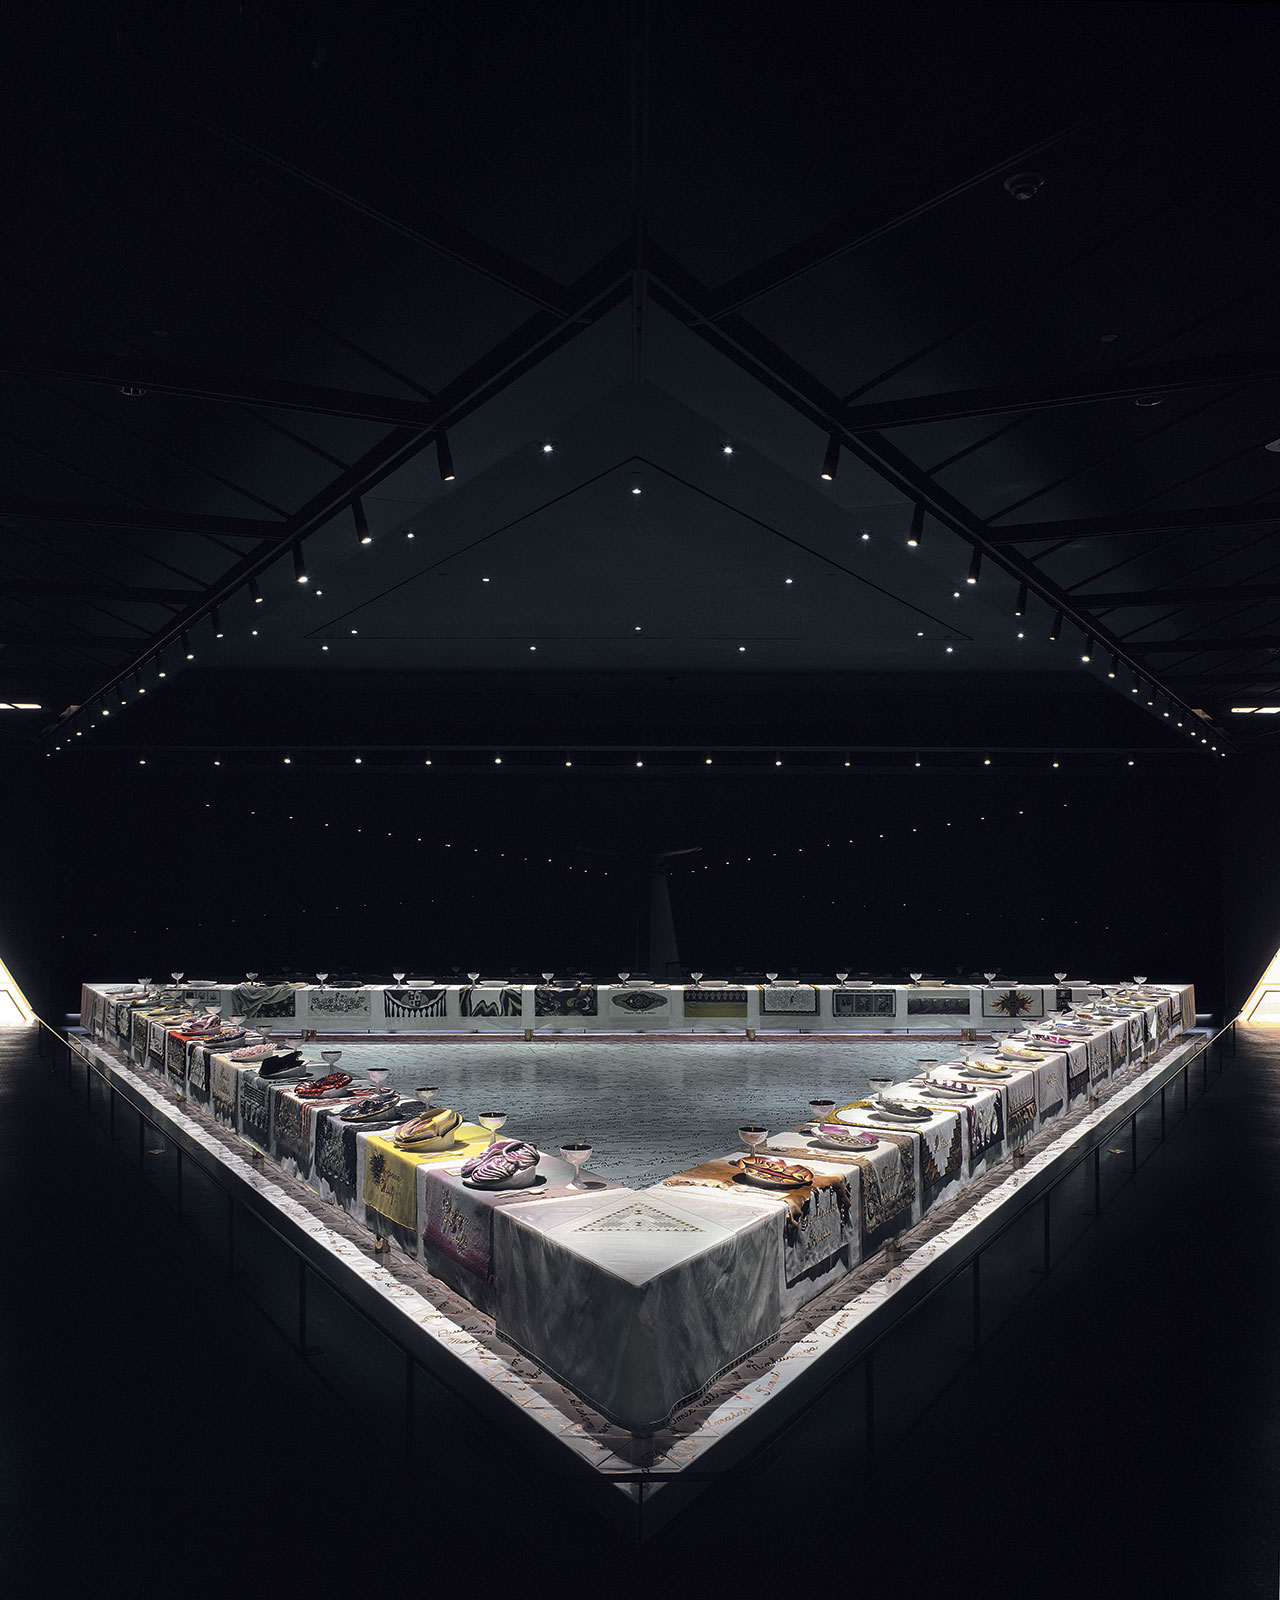 'The Dinner Party', 1974-79. Ceramic, porcelain, textile, 1463×1463cm, Brooklyn Museum, Gift of the Elizabeth A. Sackler Foundation, 2002.10. © 2017 Judy Chicago / Artists Rights Society (ARS), New York. (Photo © Donald Woodman)